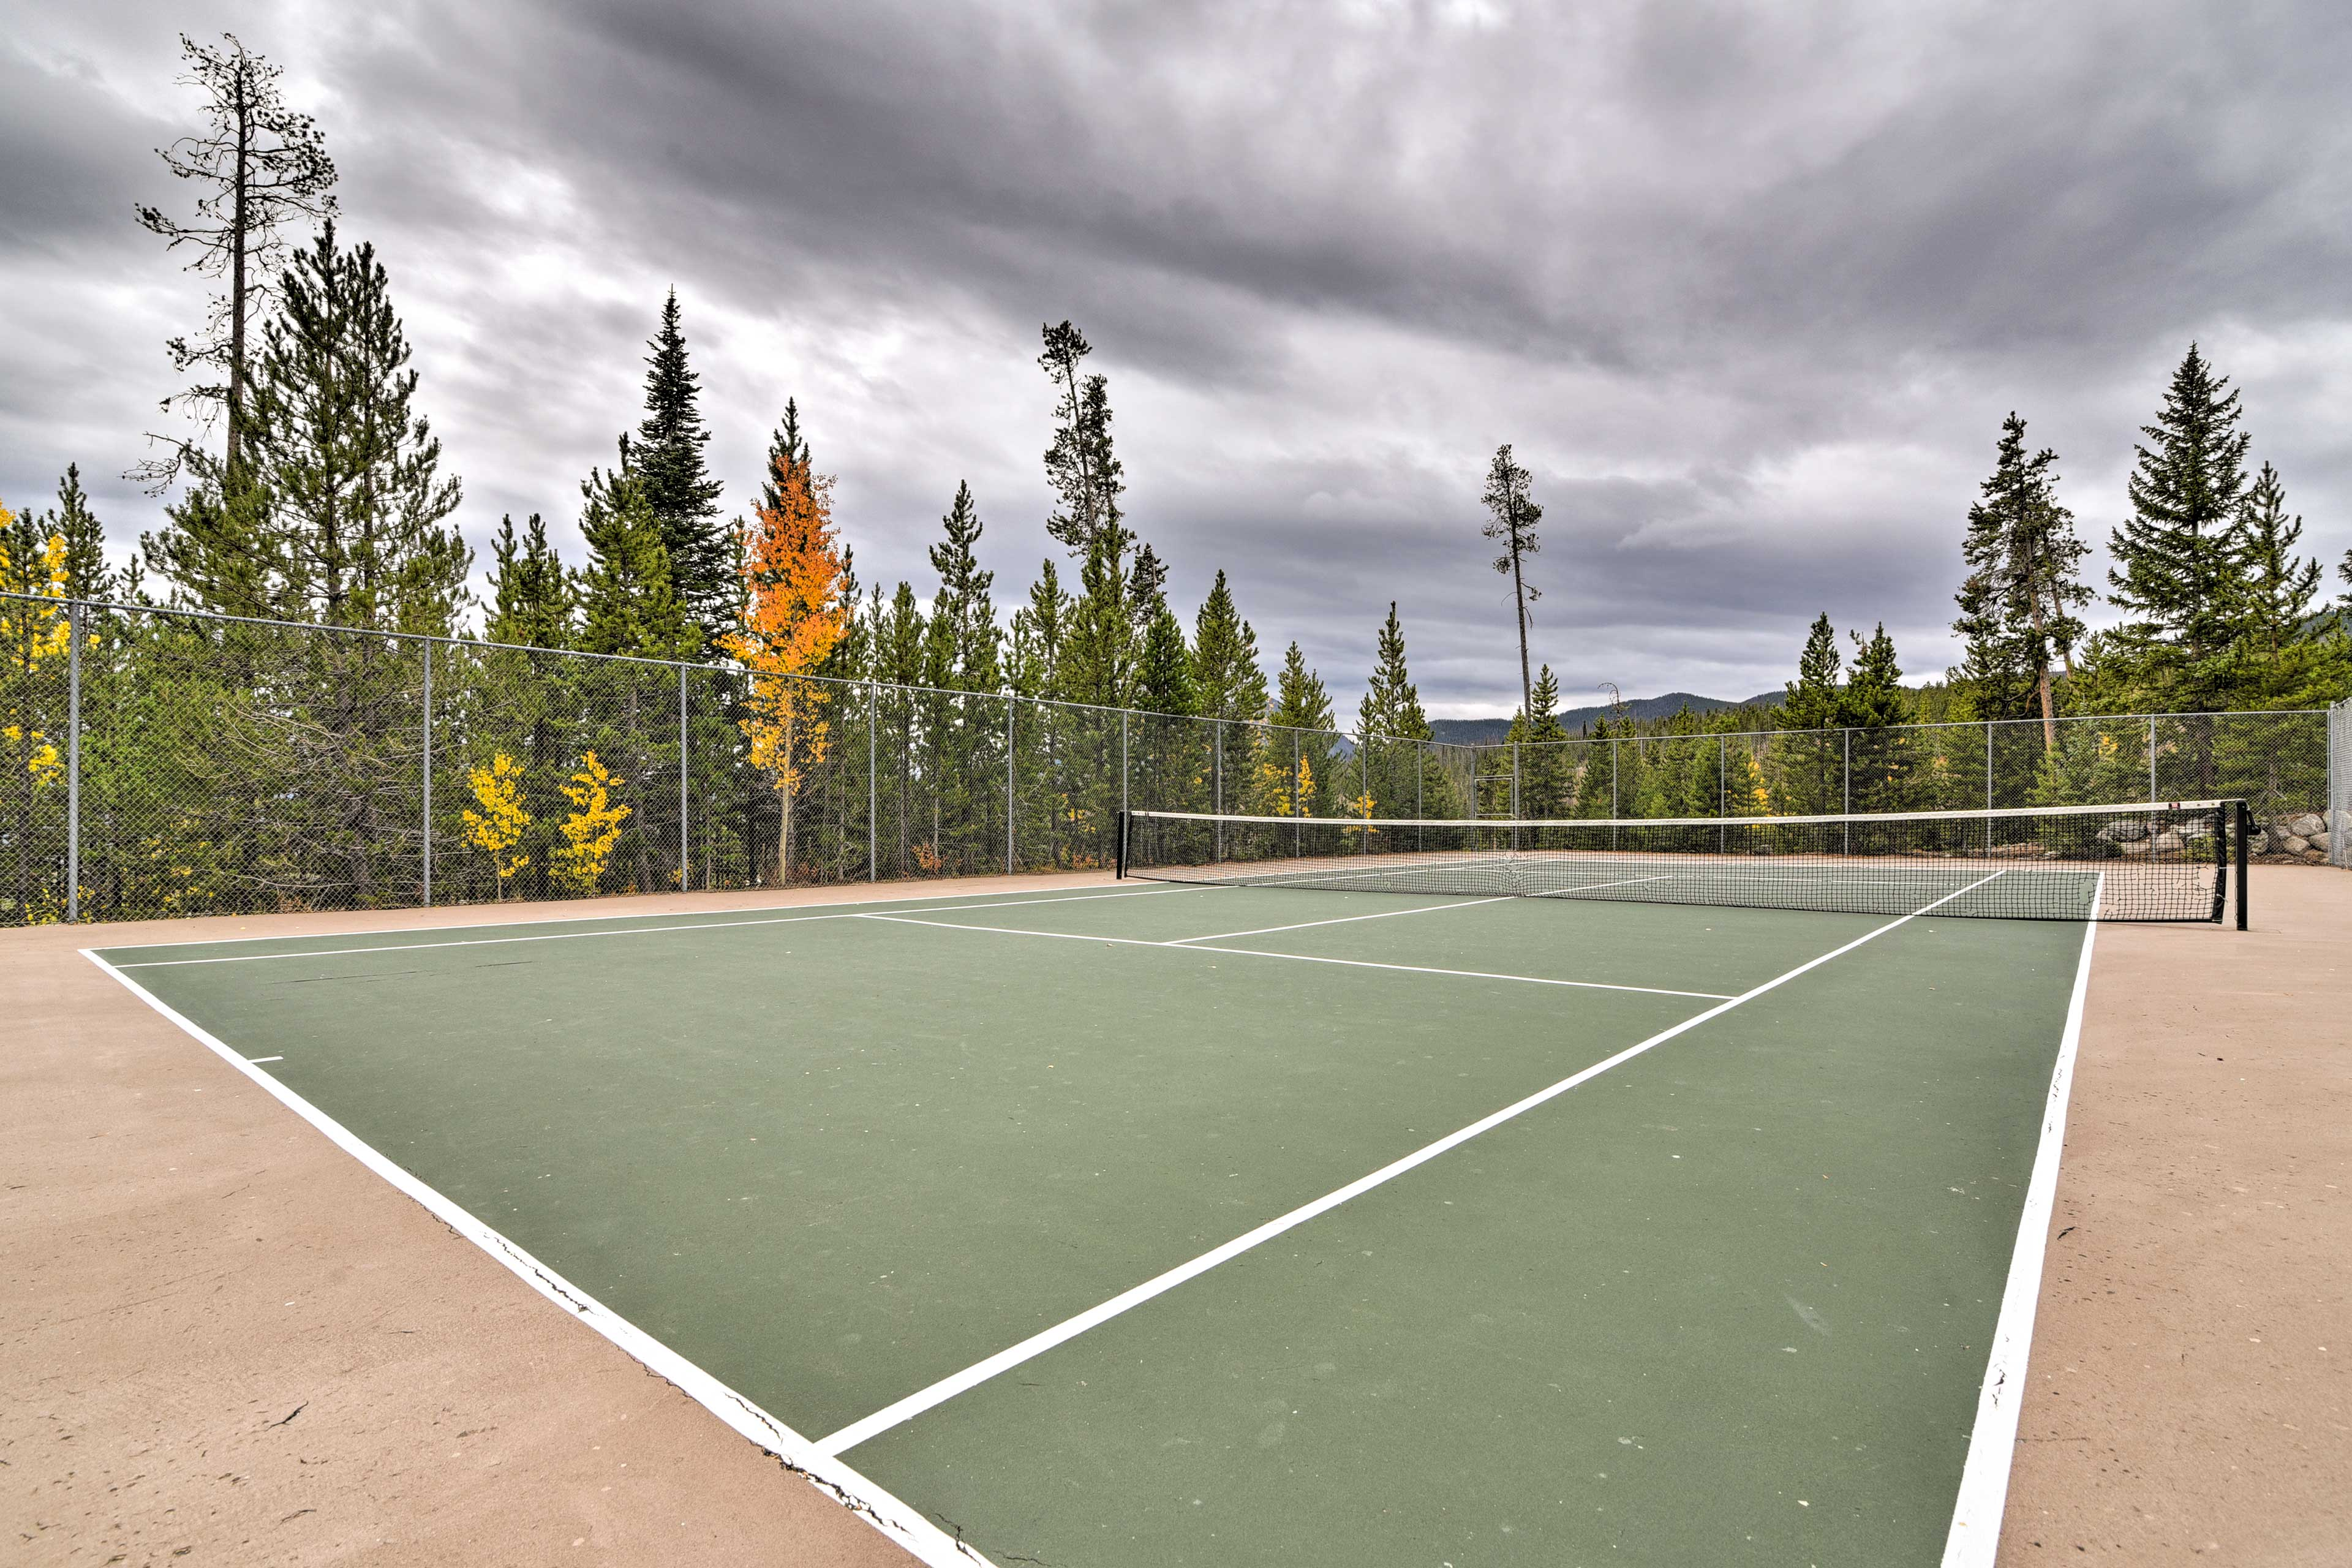 Show off your skills on the tennis court.